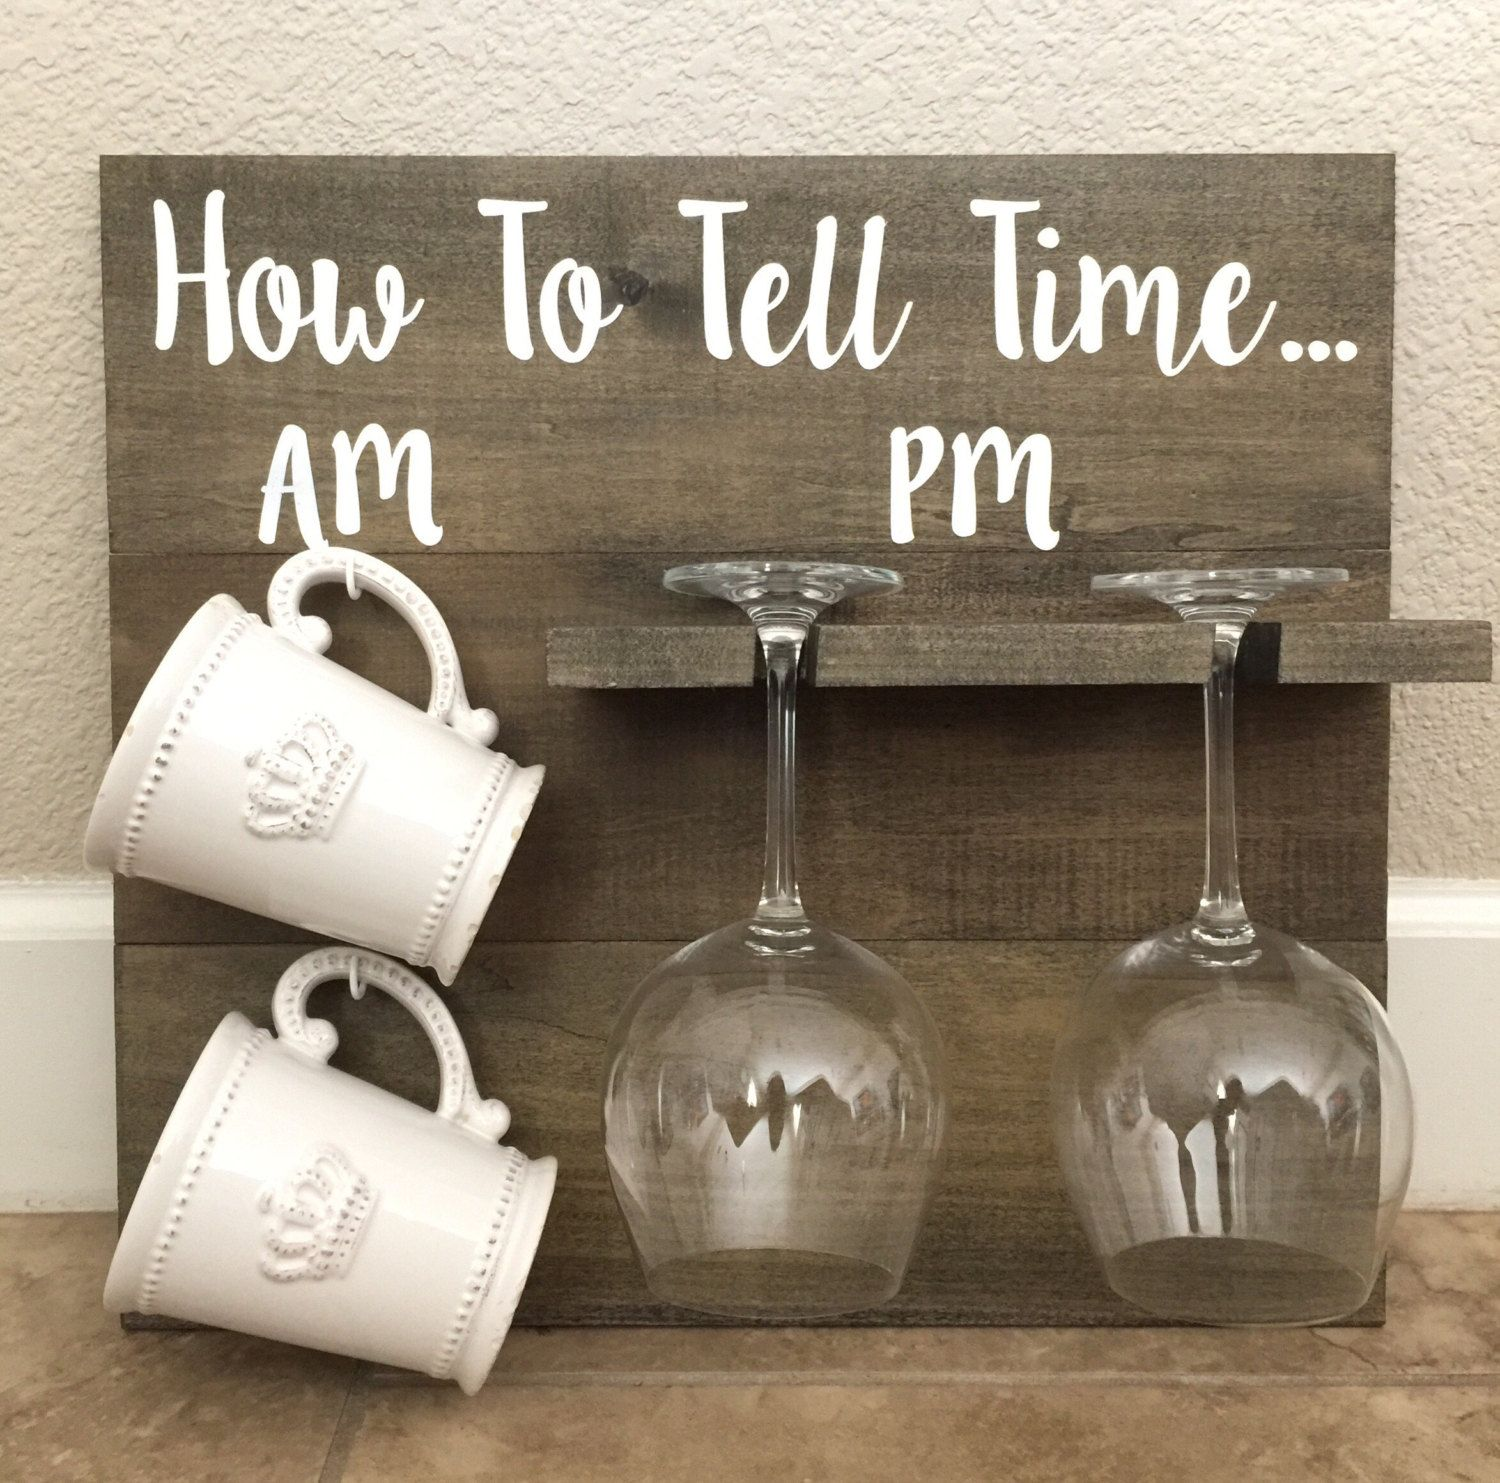 Funny Wine Bottle Holders How To Tell Time Coffee Mug And Wine Glass Holder Sign By